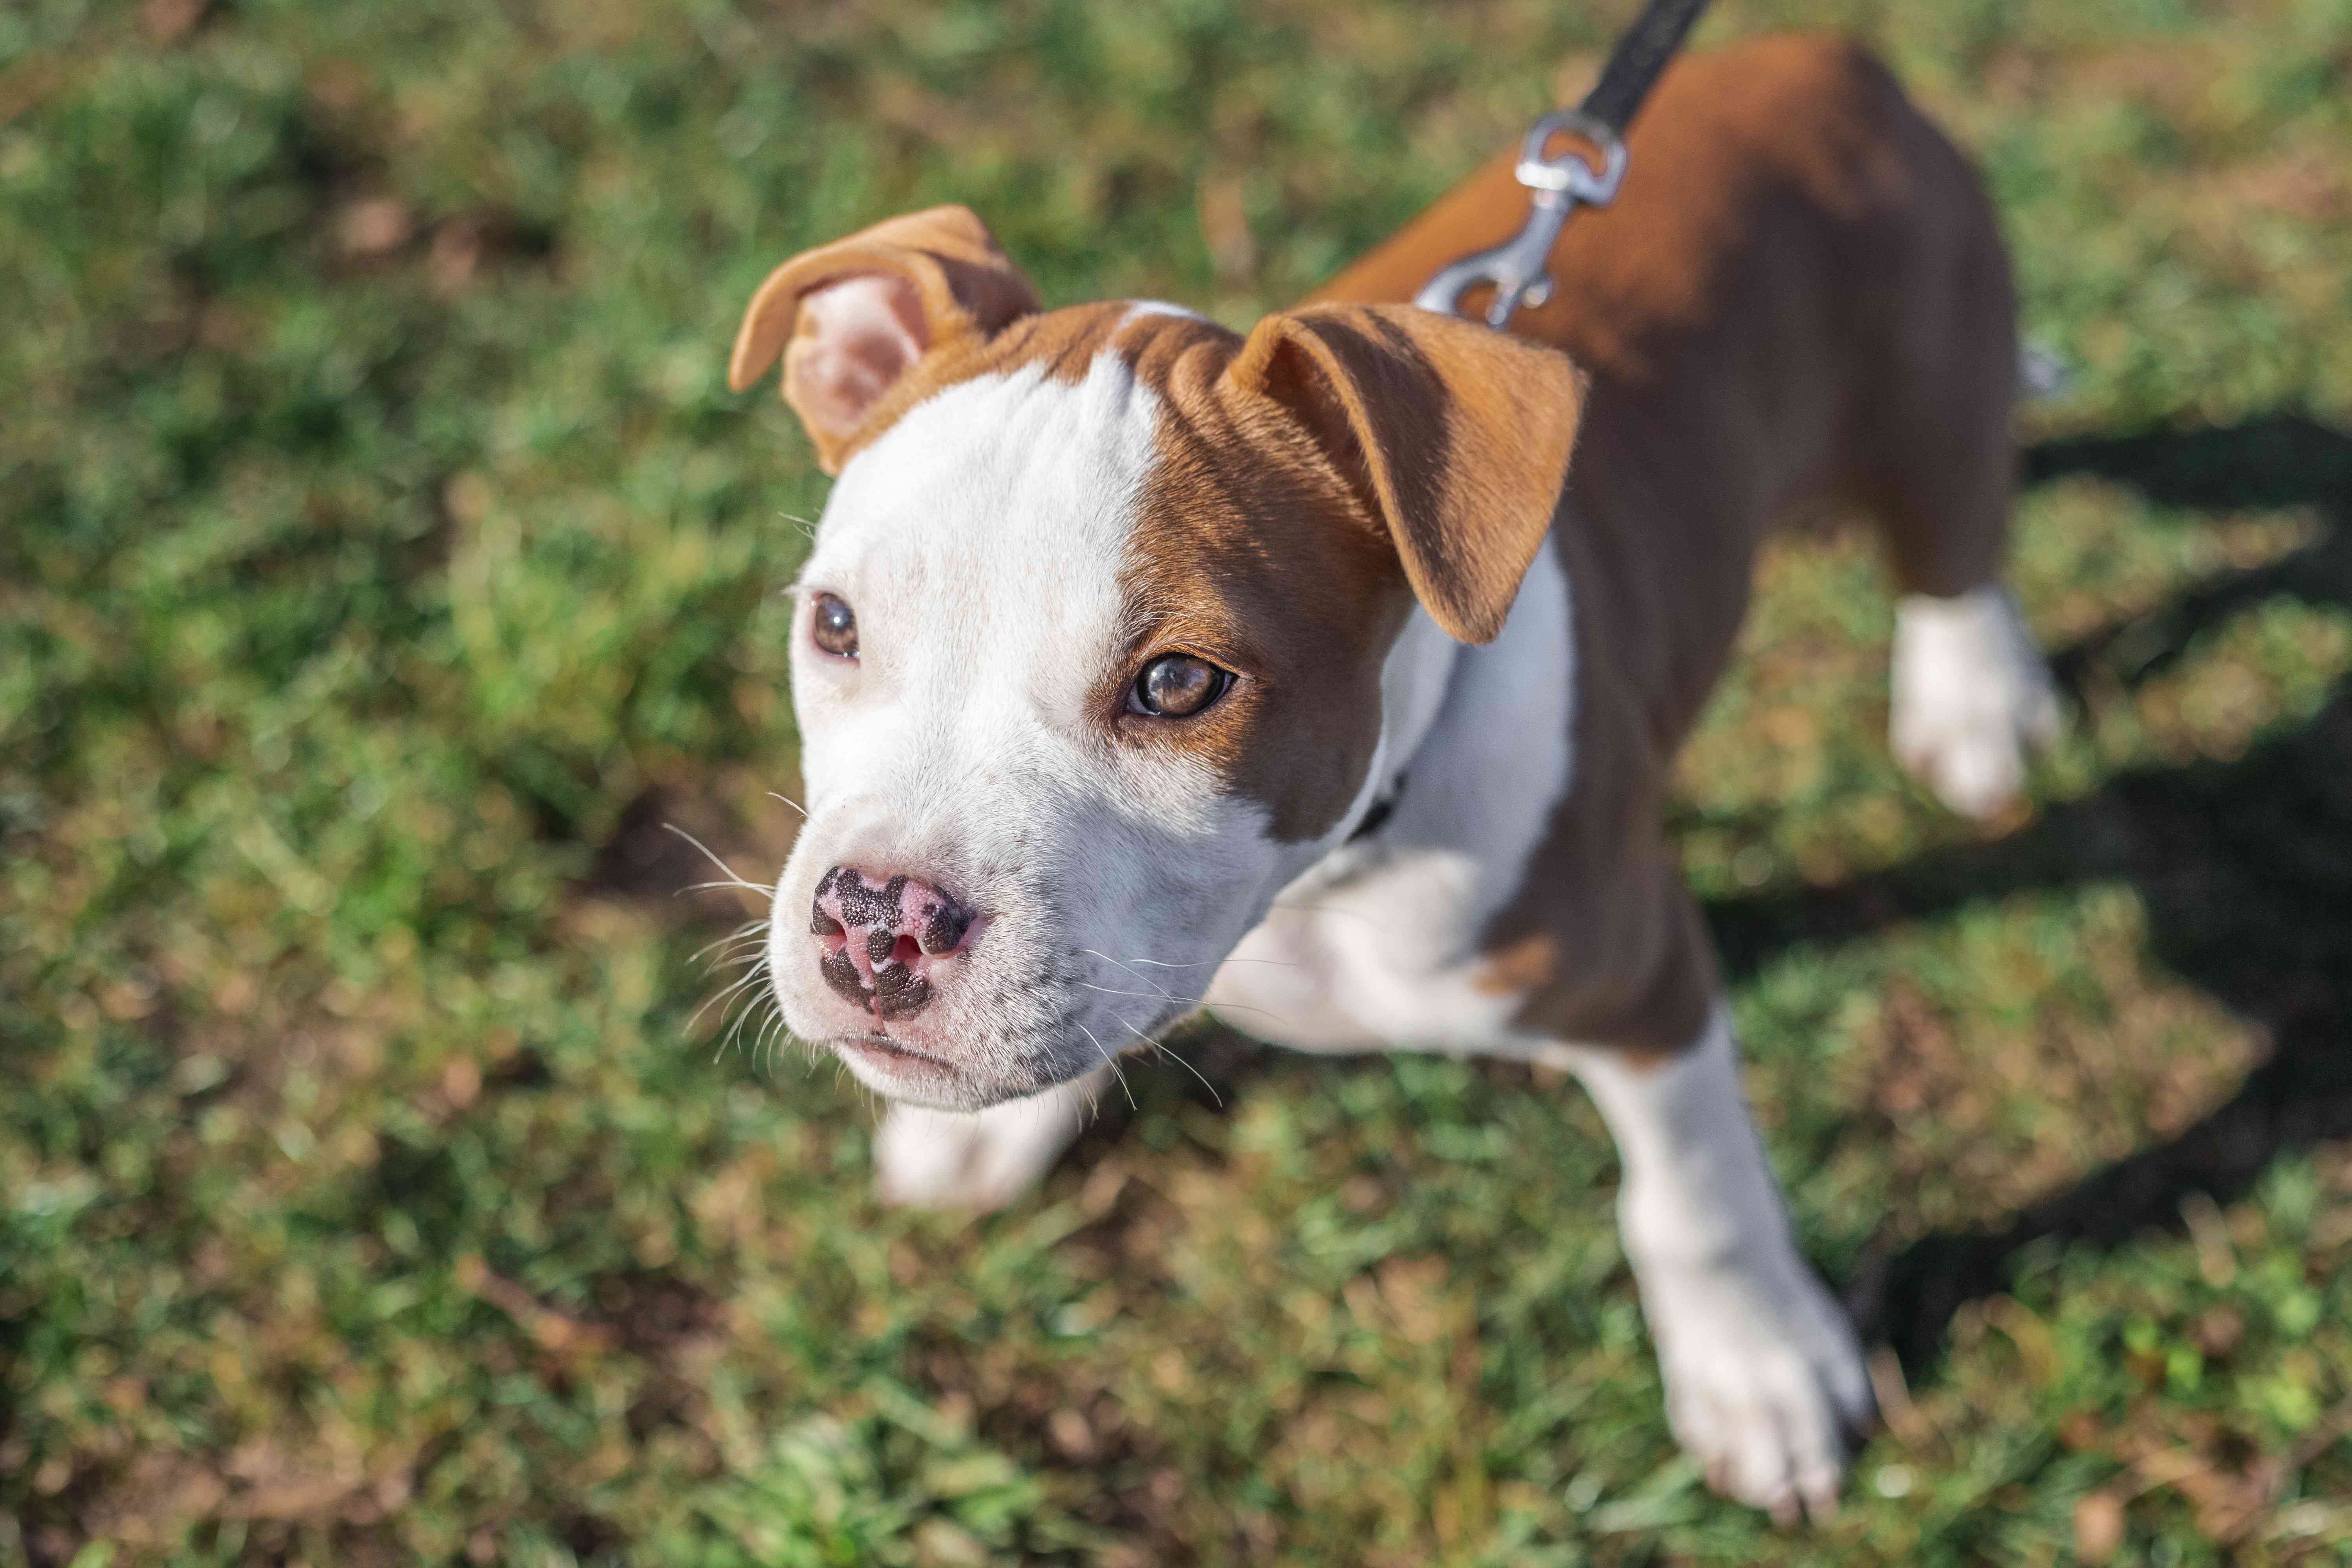 bulldog brown and white puppy on leash outside in grass